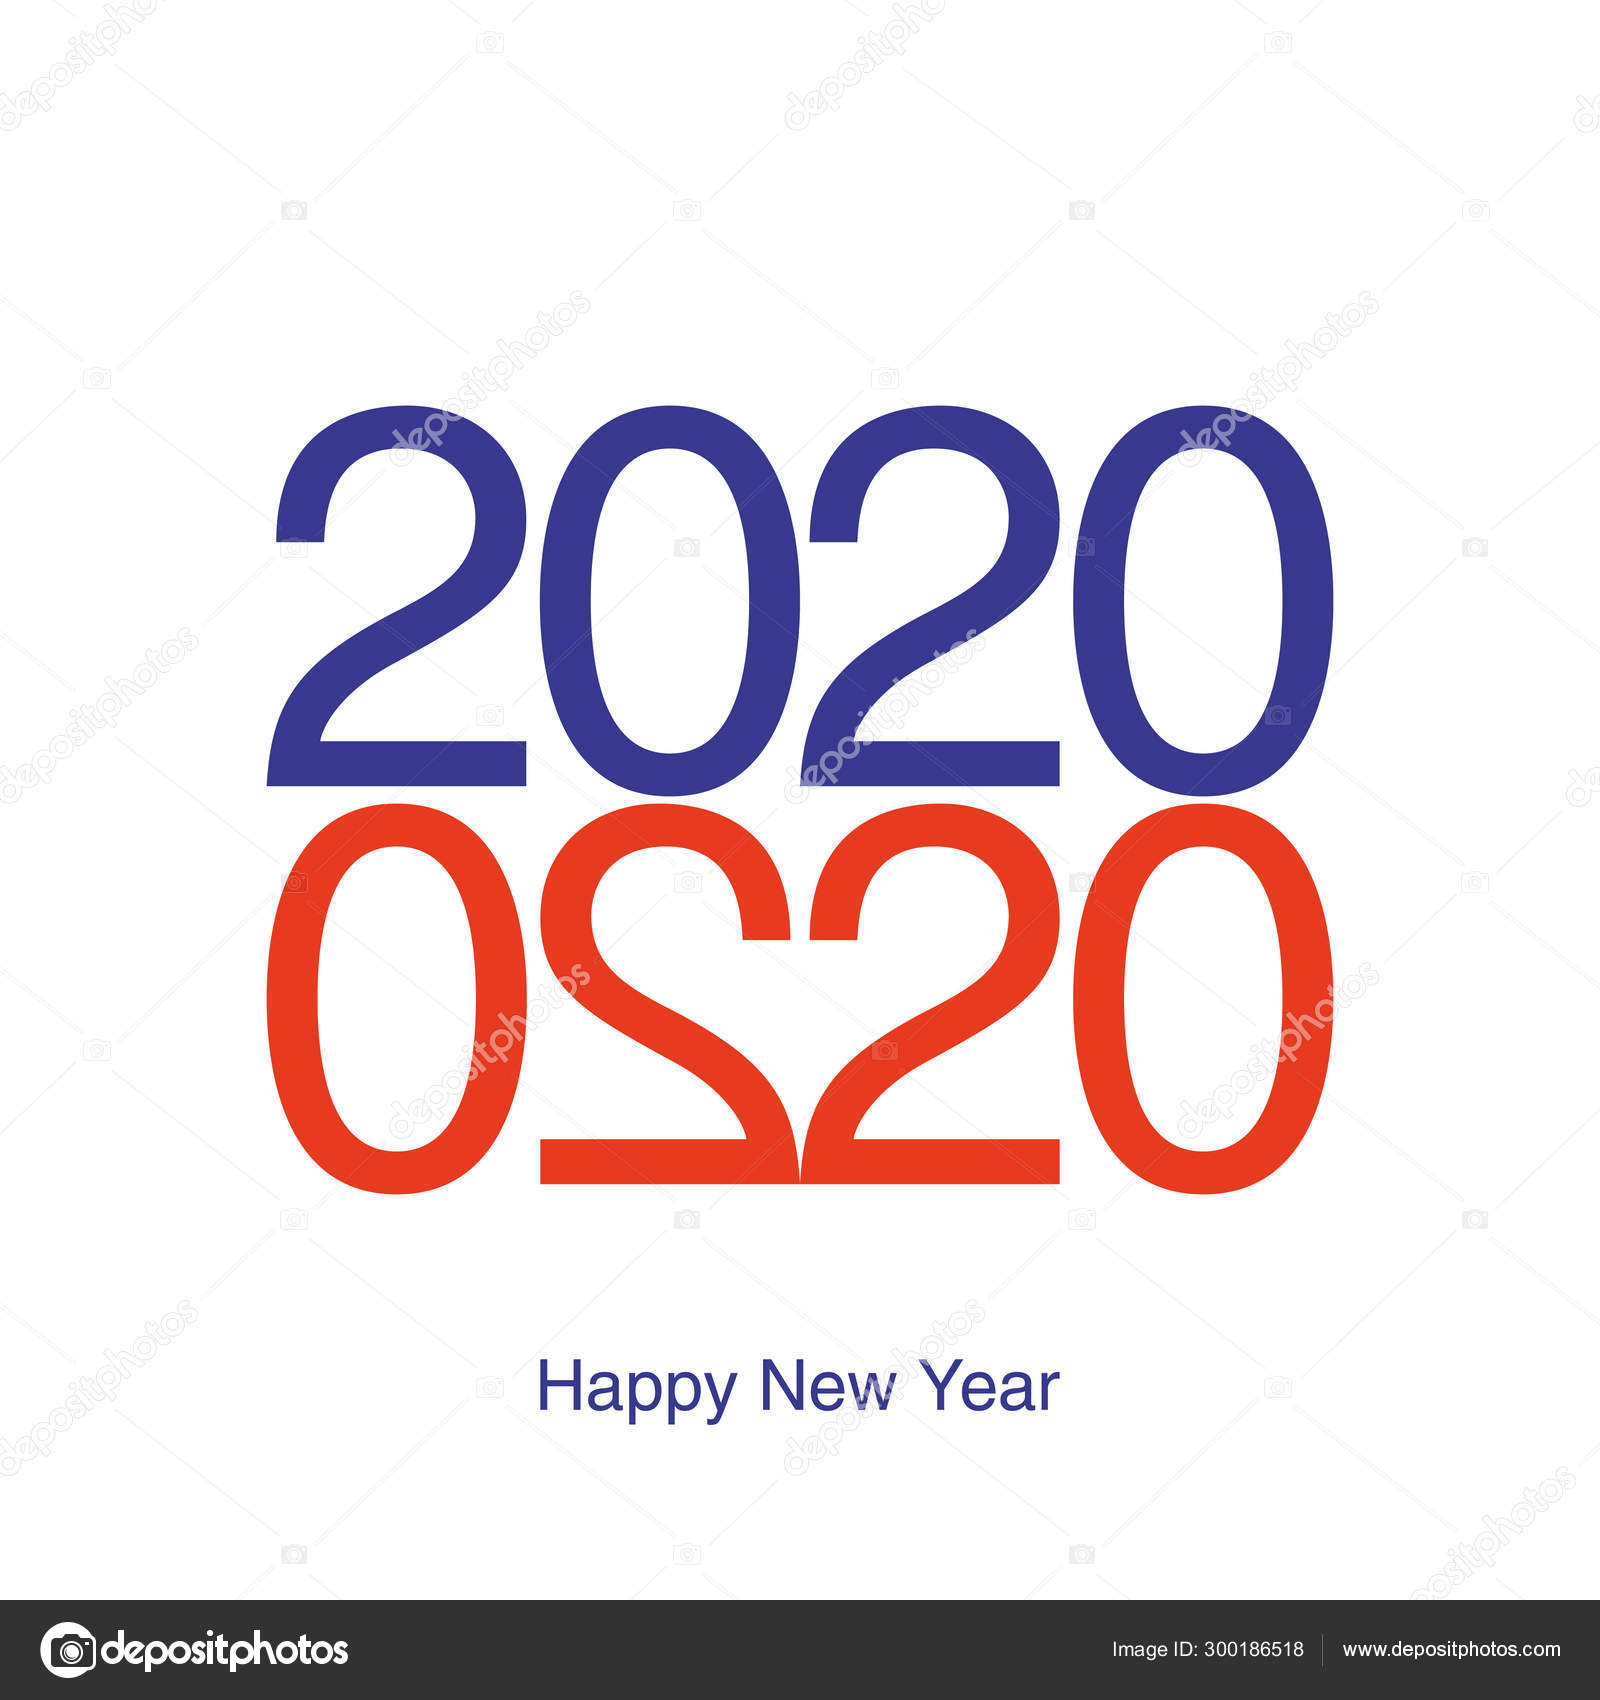 Happy New Year 2020 Greeting Card 2020 Year Typography Love